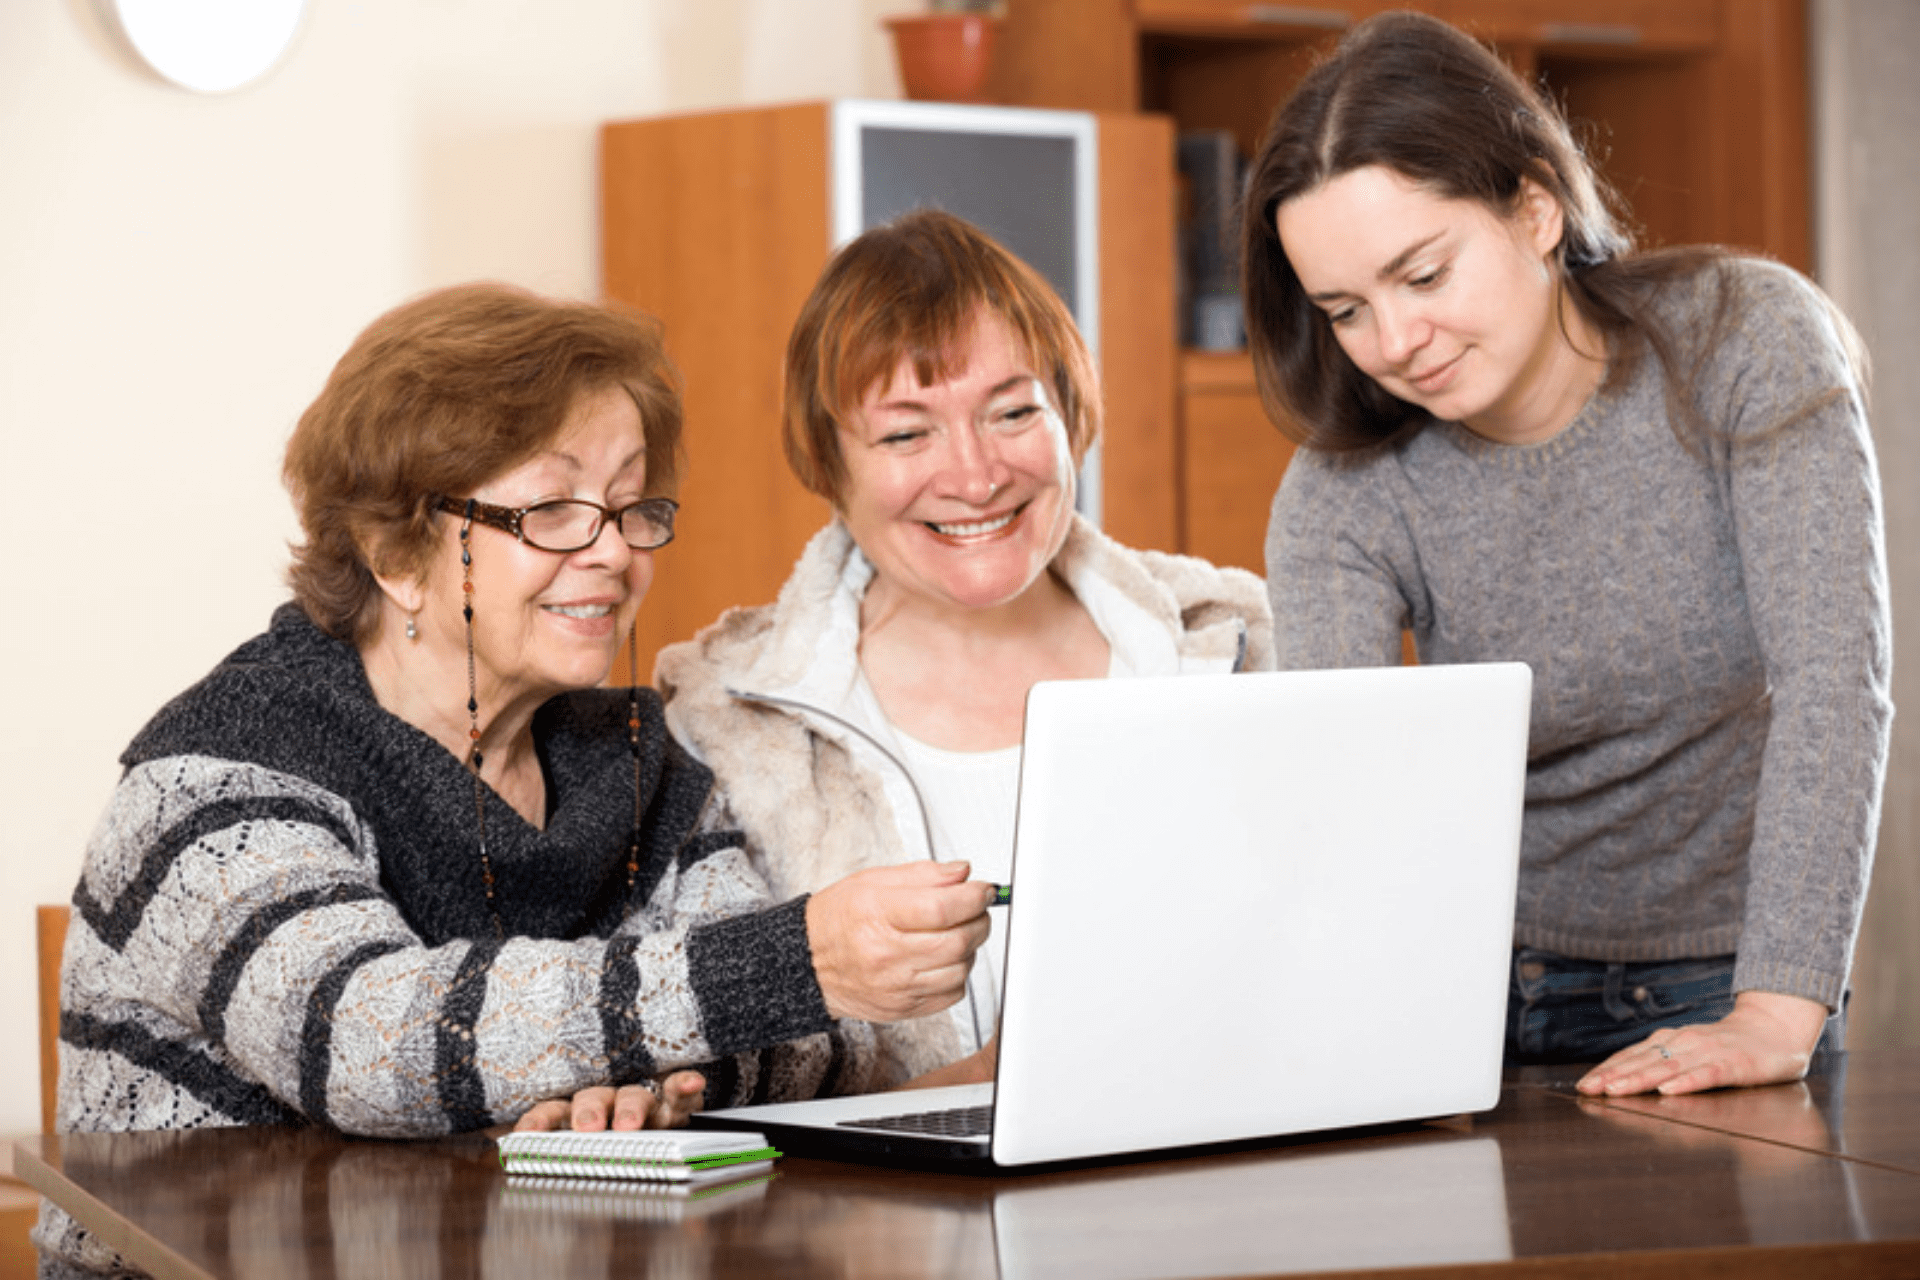 Three generations of women sitting at a table viewing a laptop